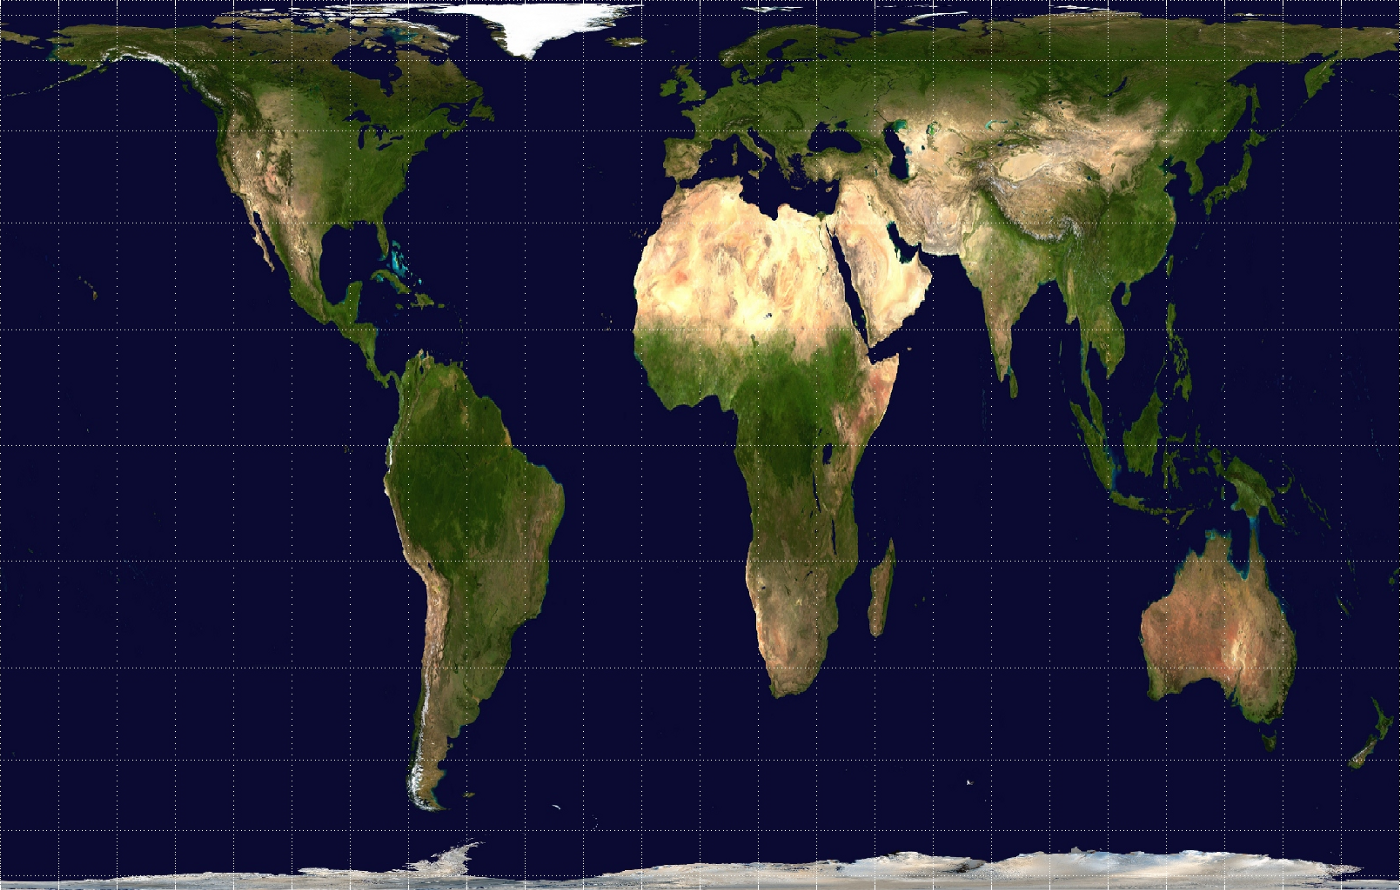 A rectangular world map projection showing physical landforms. America lies on the left hand side, while Europe, Africa, Asia and Australia on the right. Antarctica is thinly shown at the bottom. The shapes are stretched vertically on the center area, and and both the northernmost and southernmost section are heavily compressed.